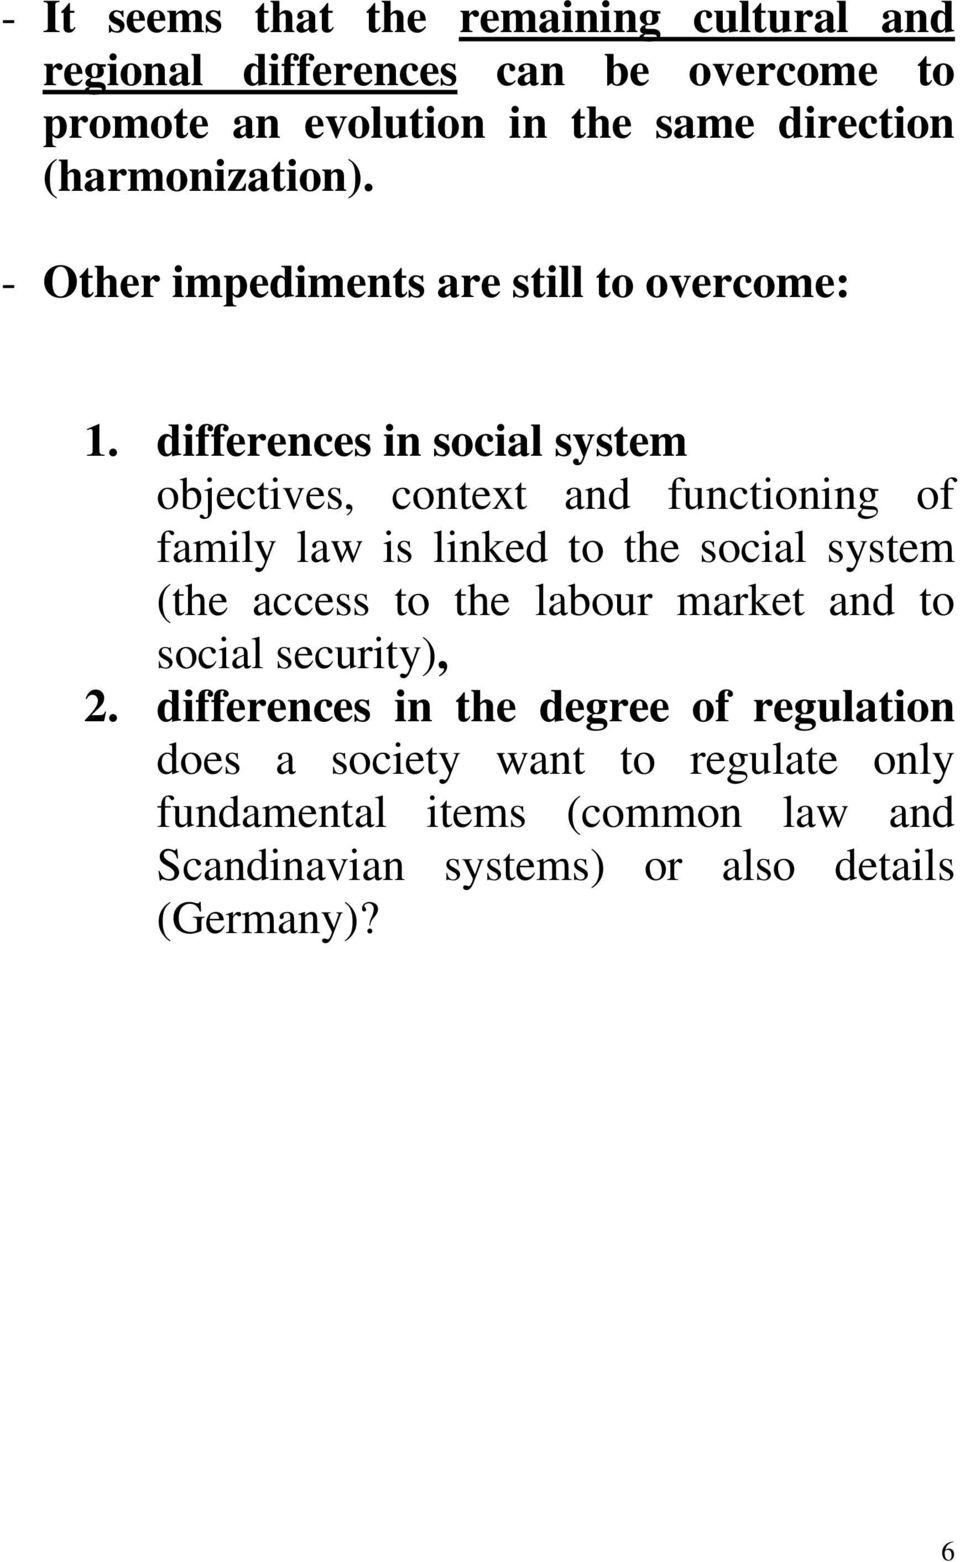 differences in social system objectives, context and functioning of family law is linked to the social system (the access to the